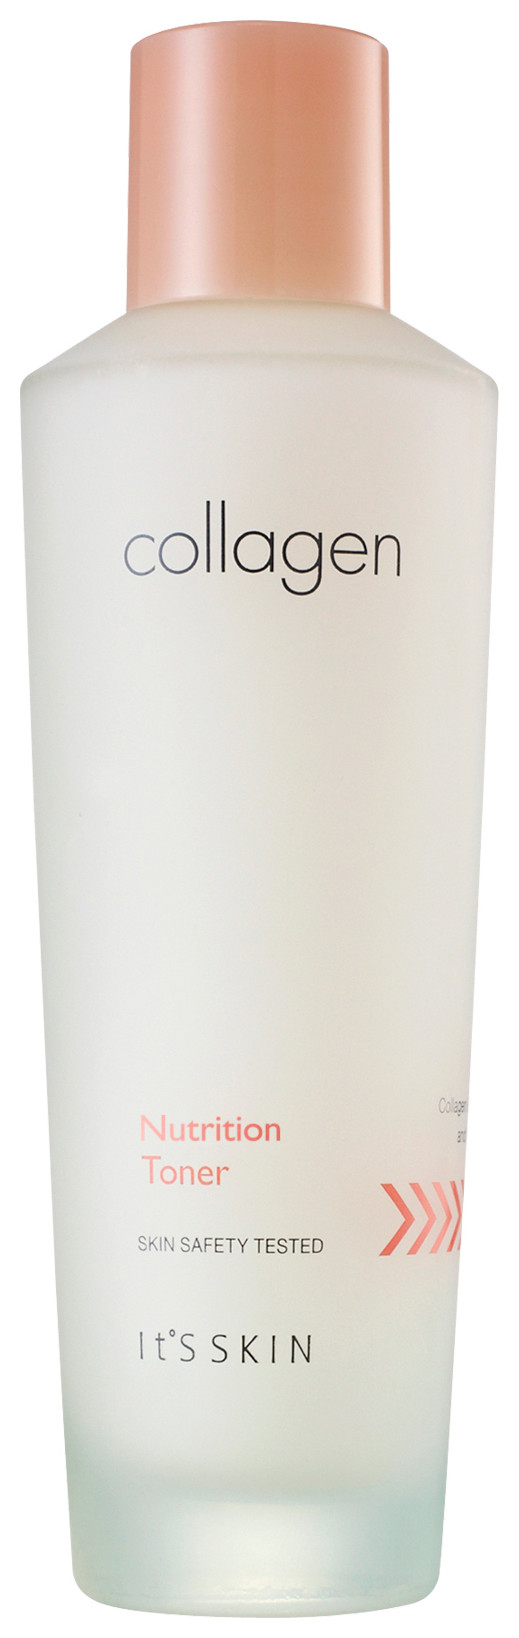 "Питательный тонер ""Collagen Nutrition Toner""  It's Skin"